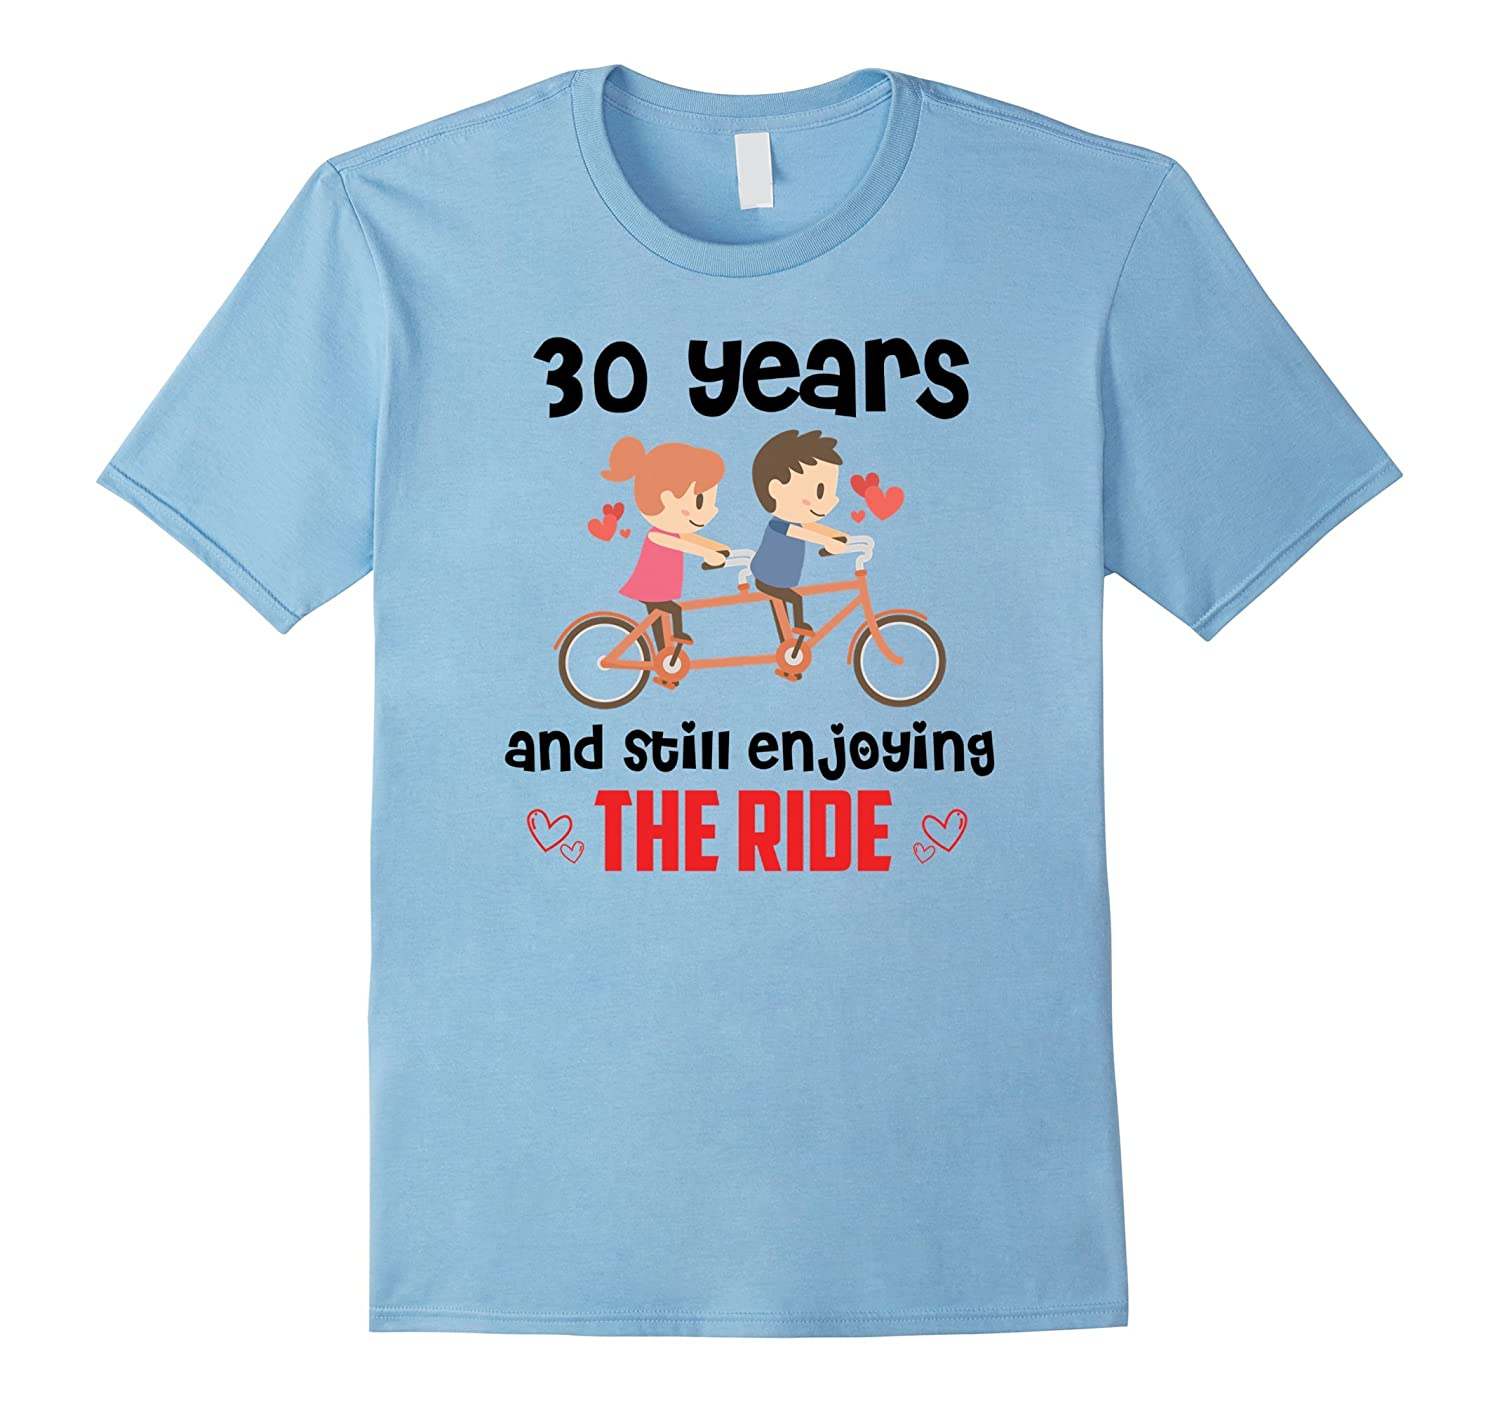 Wedding Anniversary Gifts 30 Years: 30 Years Wedding Anniversary Gifts Ideas T-Shirt-Art